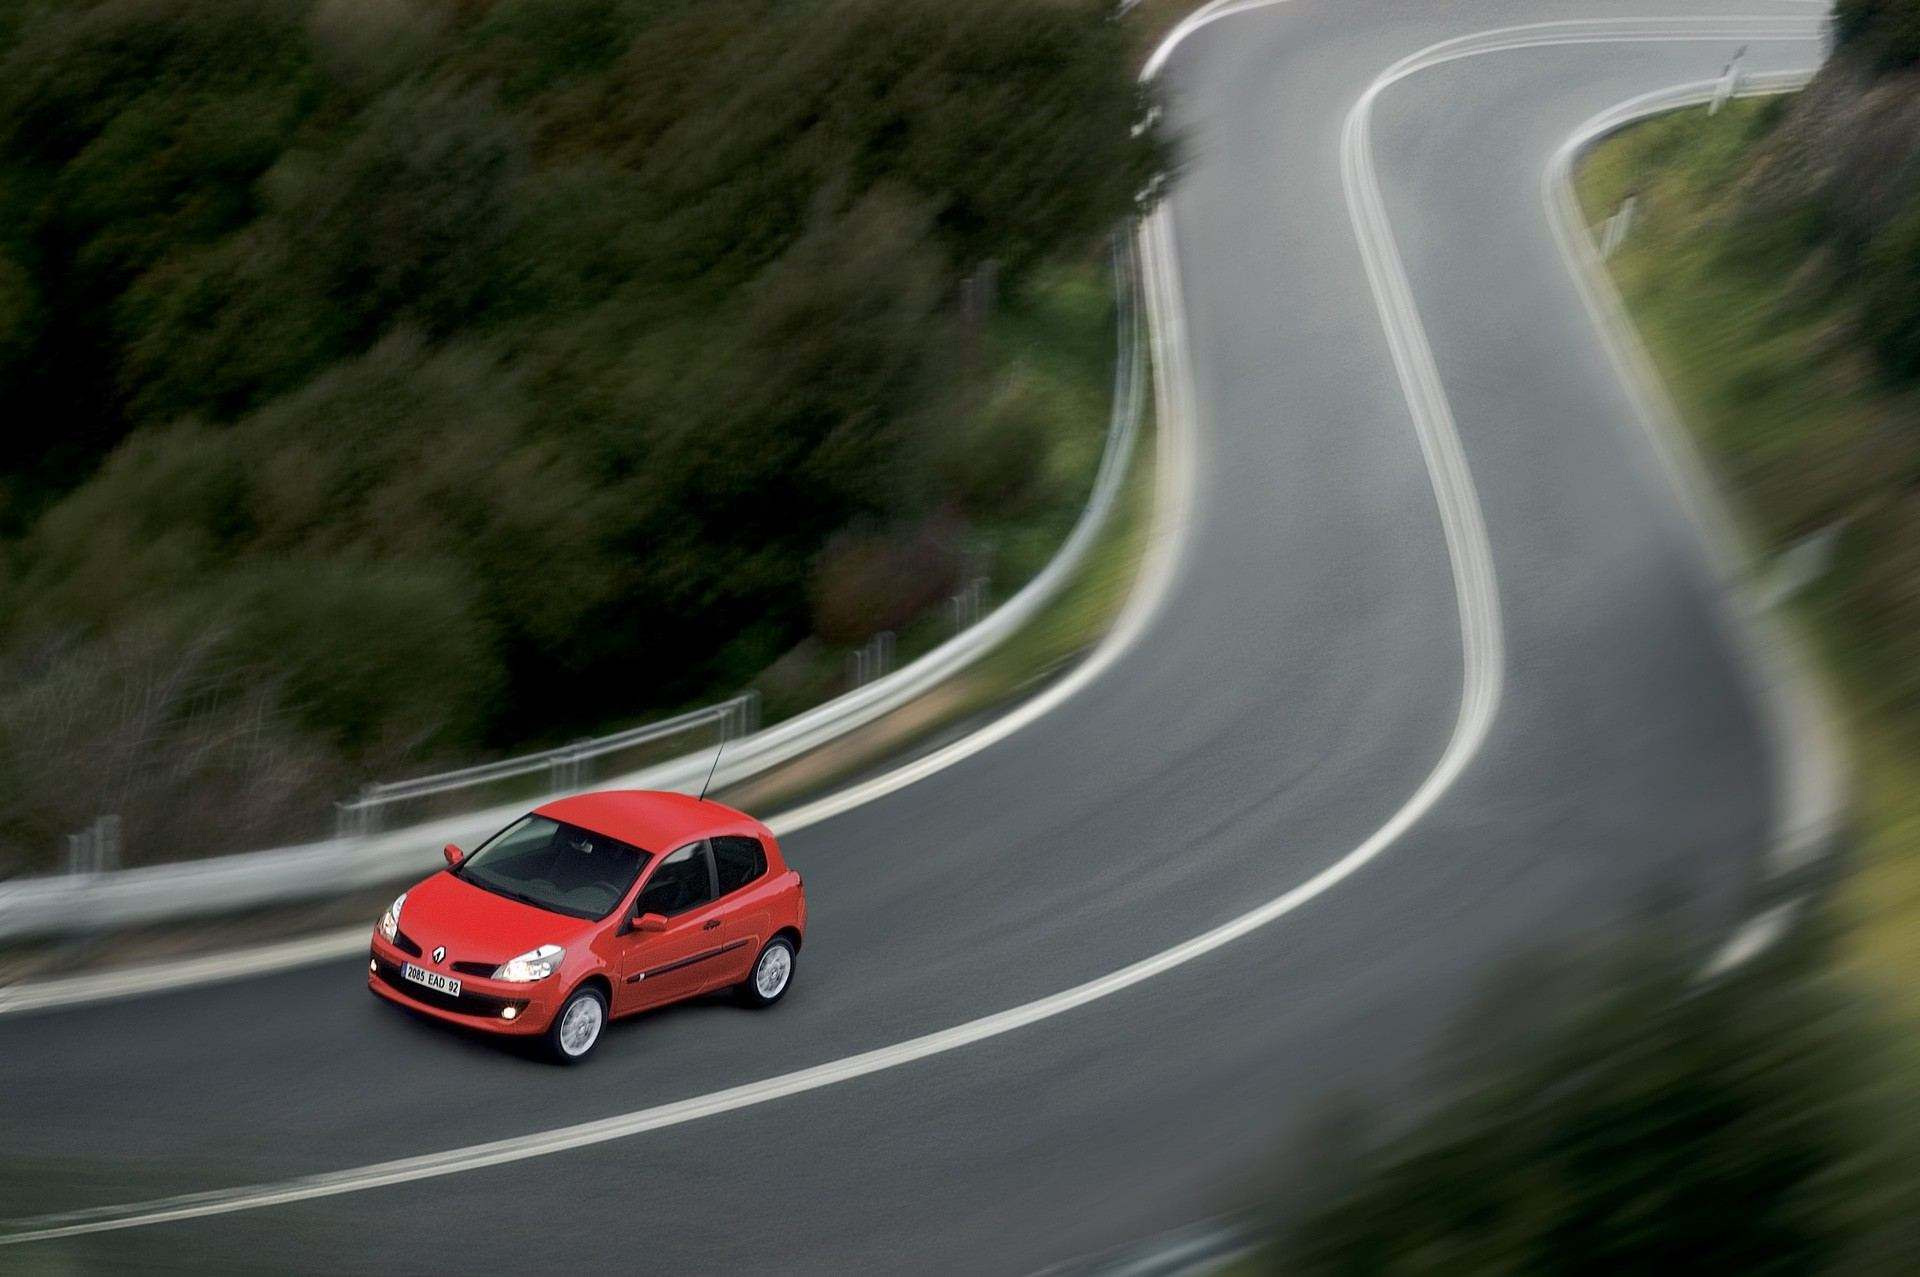 2020-30-years-of-Renault-CLIO-Renault-CLIO-III-2005-2012-9